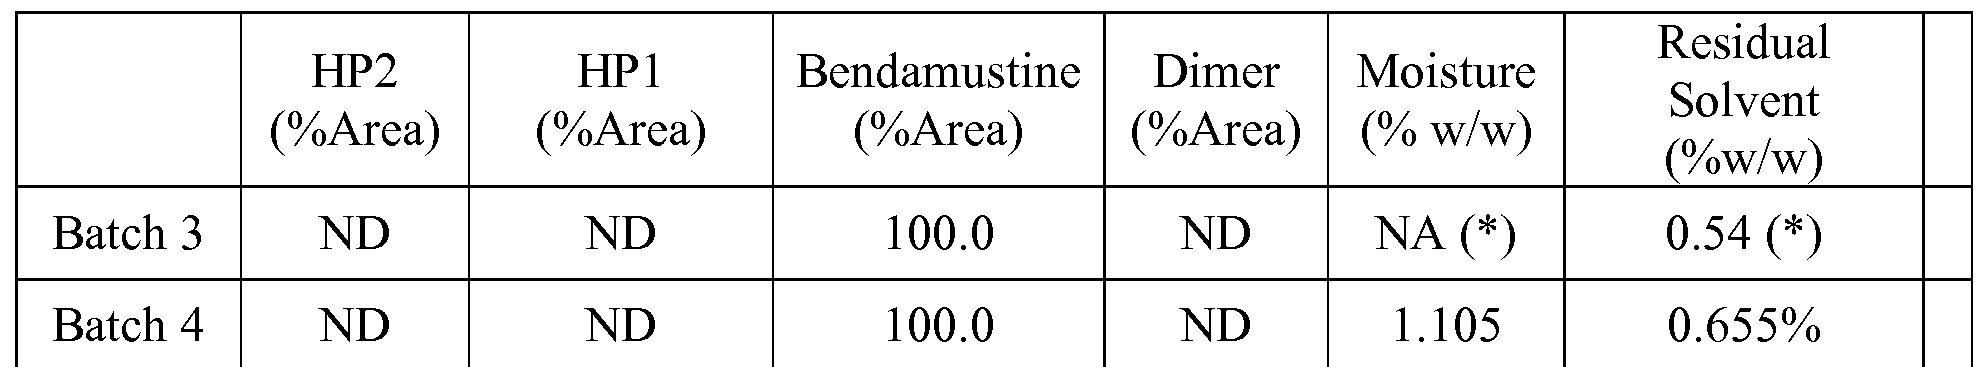 WO2015138199A1 - Bendamustine solid dispersions and